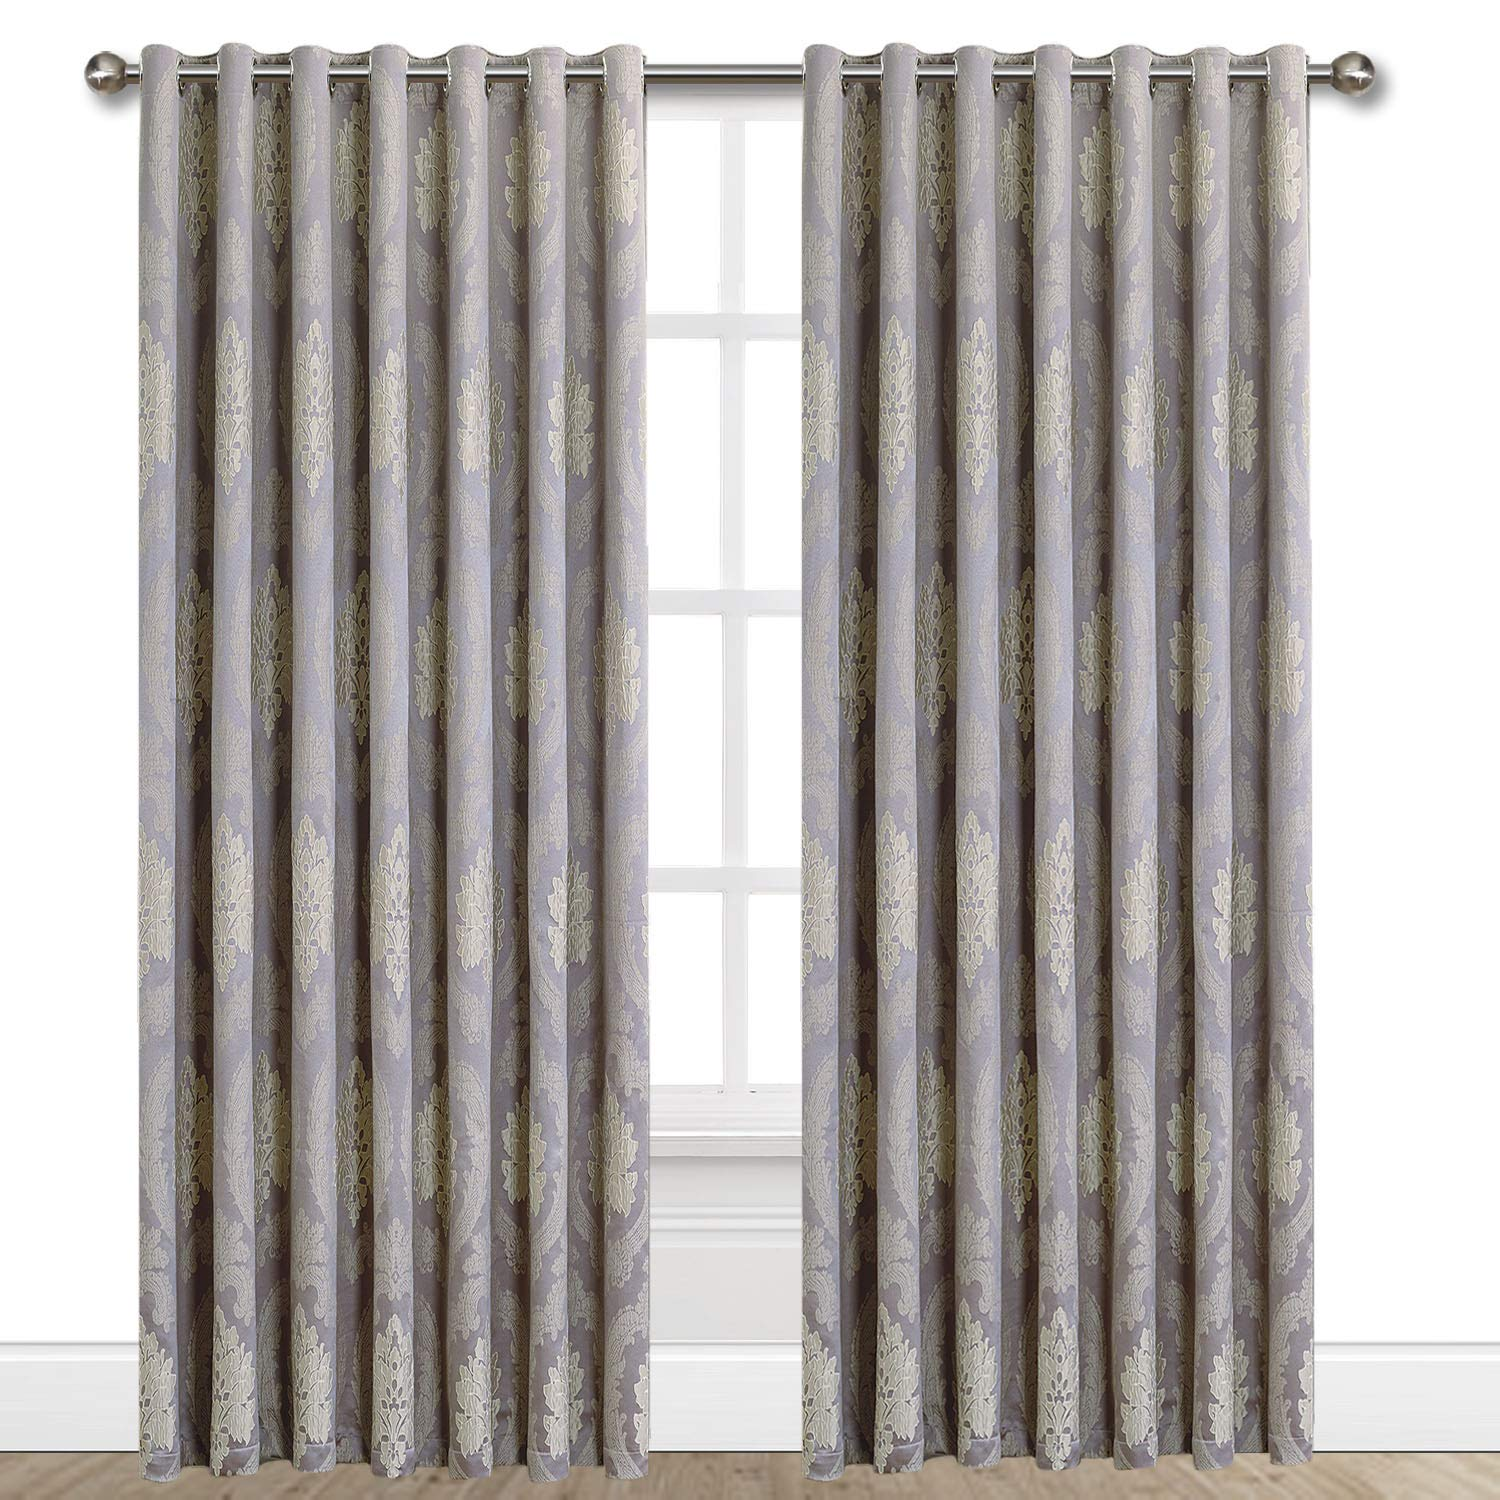 Oxford Homeware Pair Of Damask Luxury Jacquard Eyelet Fully Lined Floral Curtains